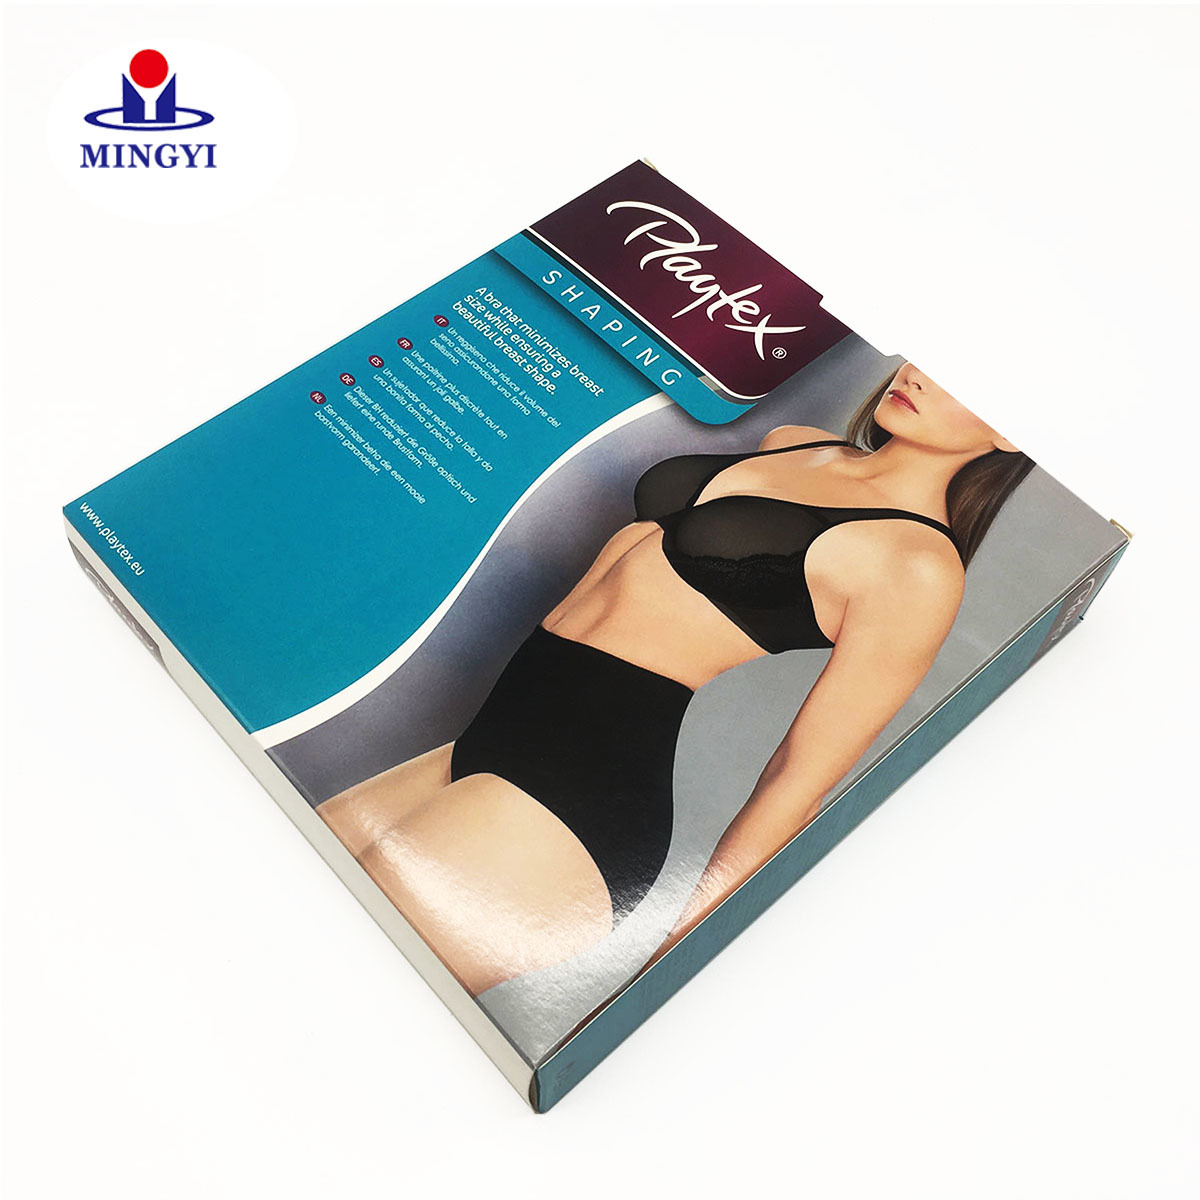 Customized underwear packaging box with luxury with gloss varnishing technique